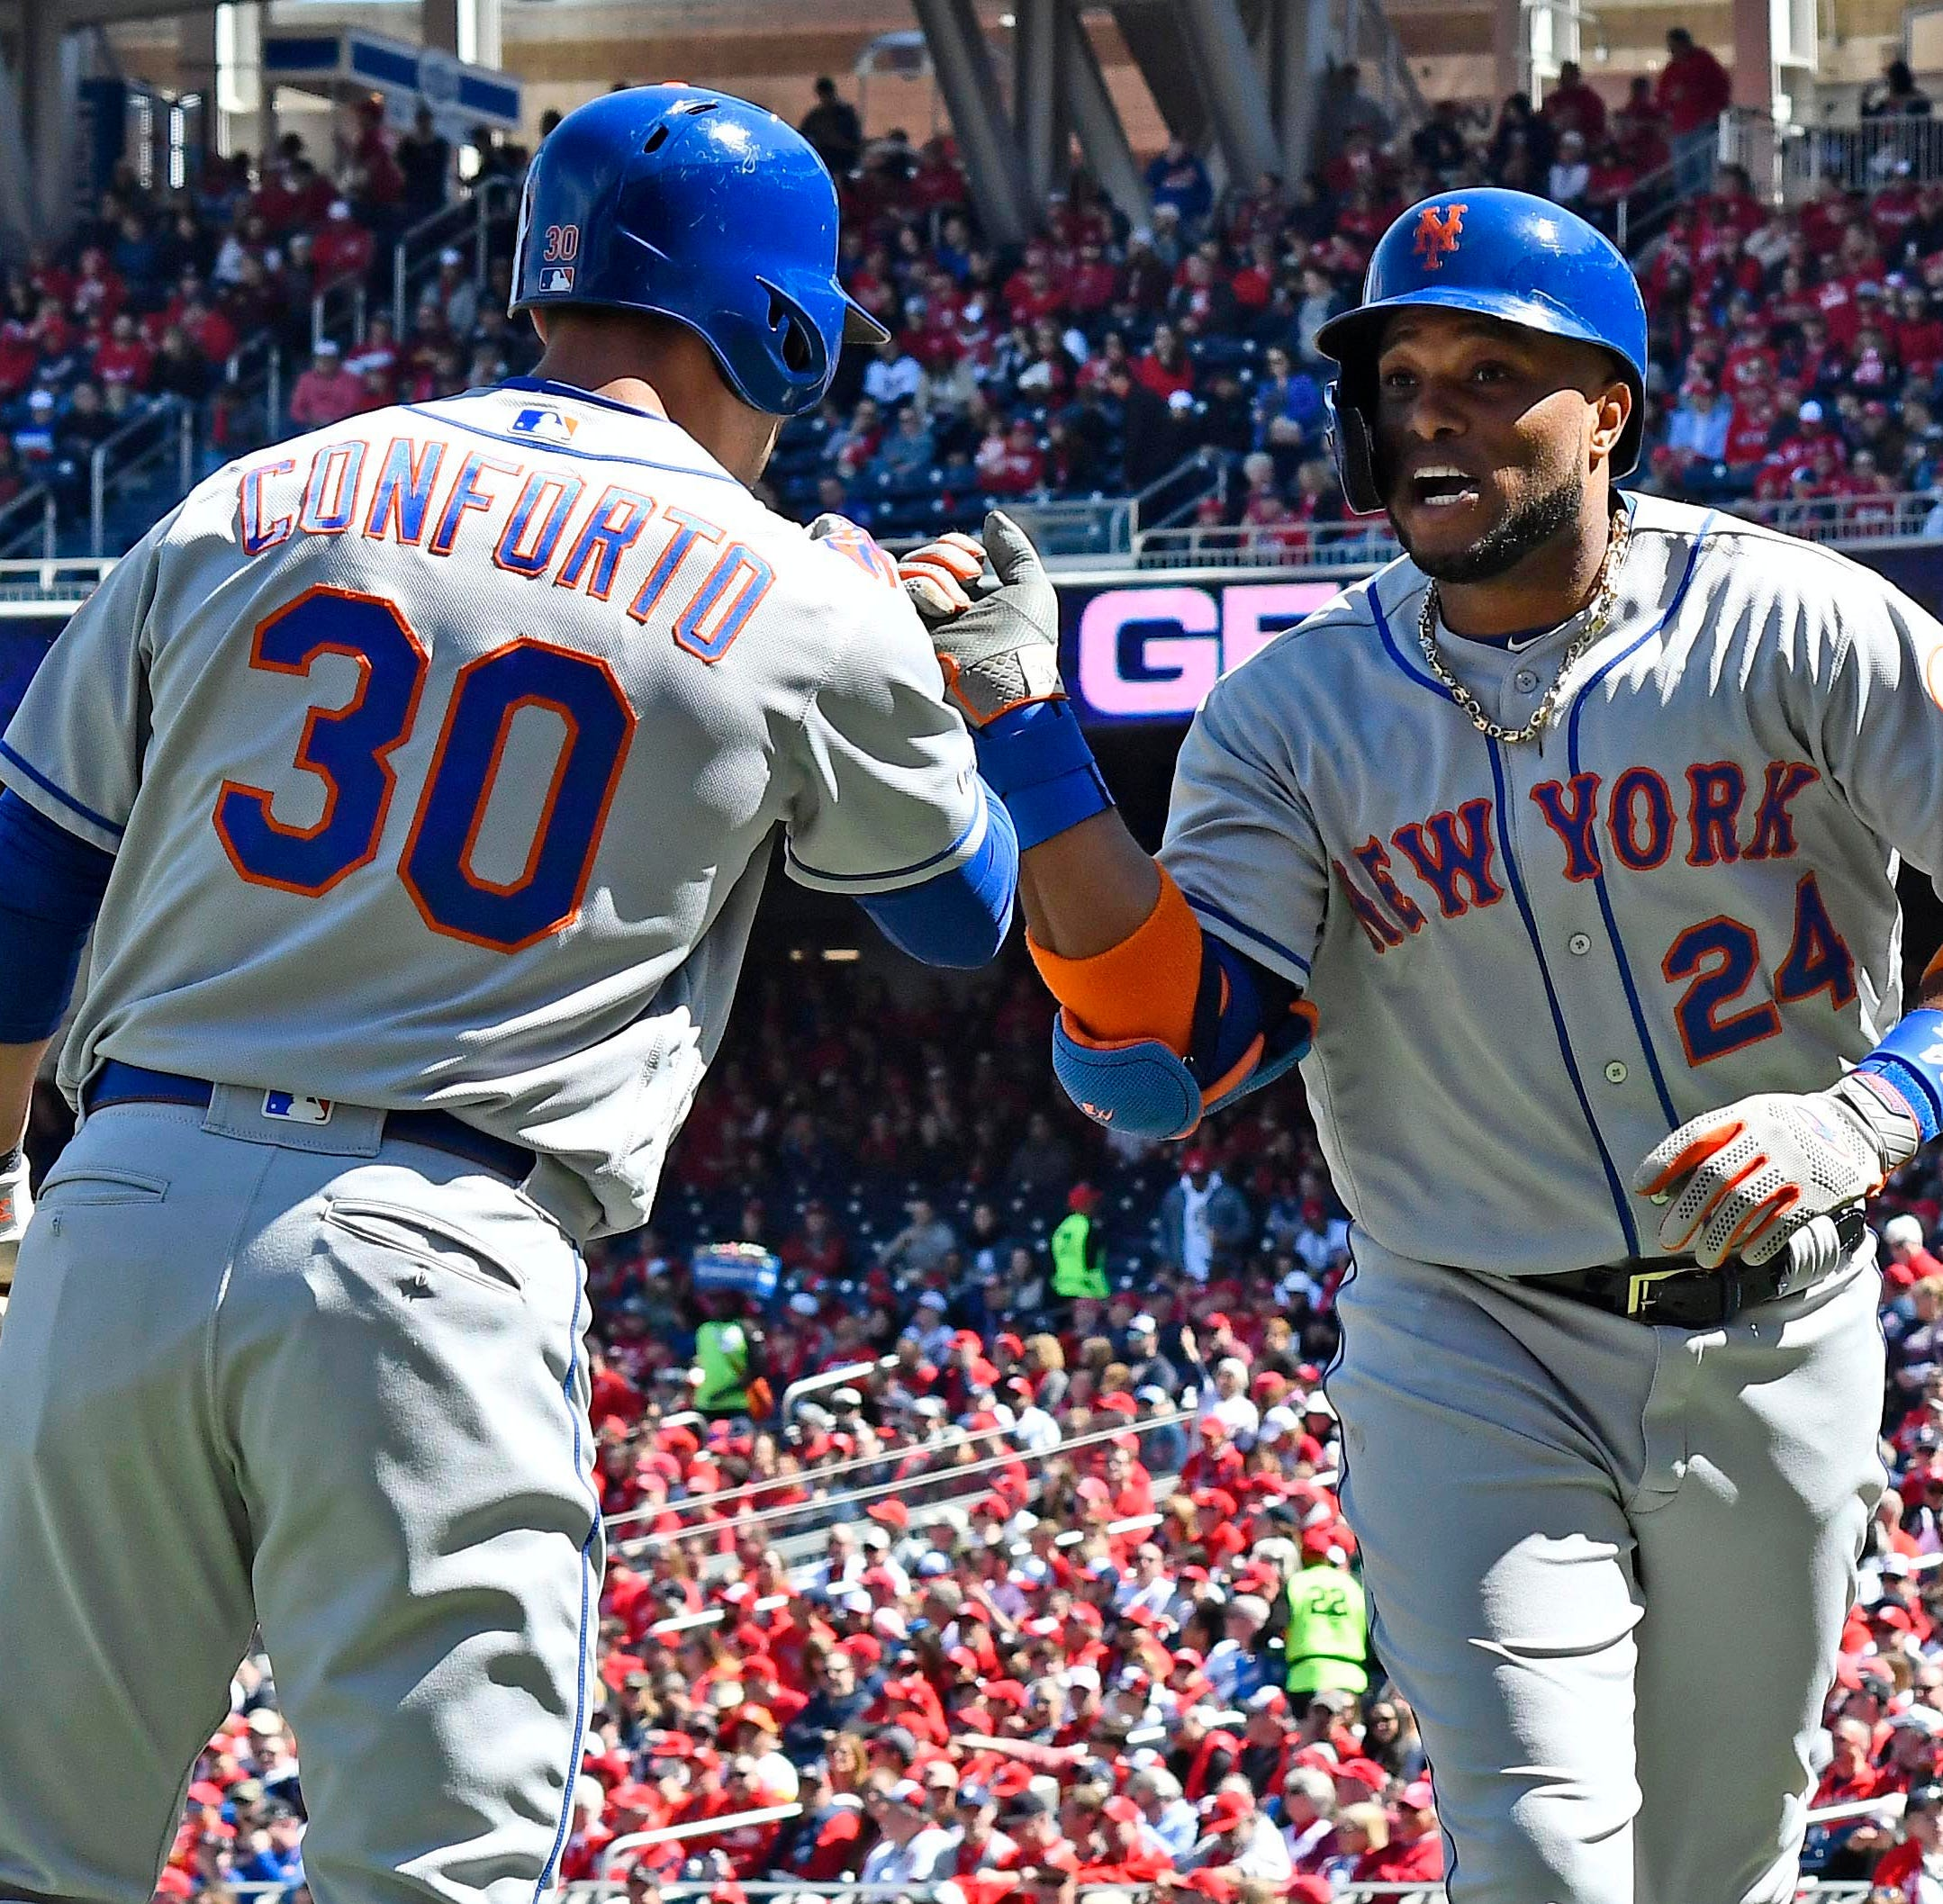 Mets' Jacob deGrom dominates, Robinson Cano comes up big in opening day win over Nationals